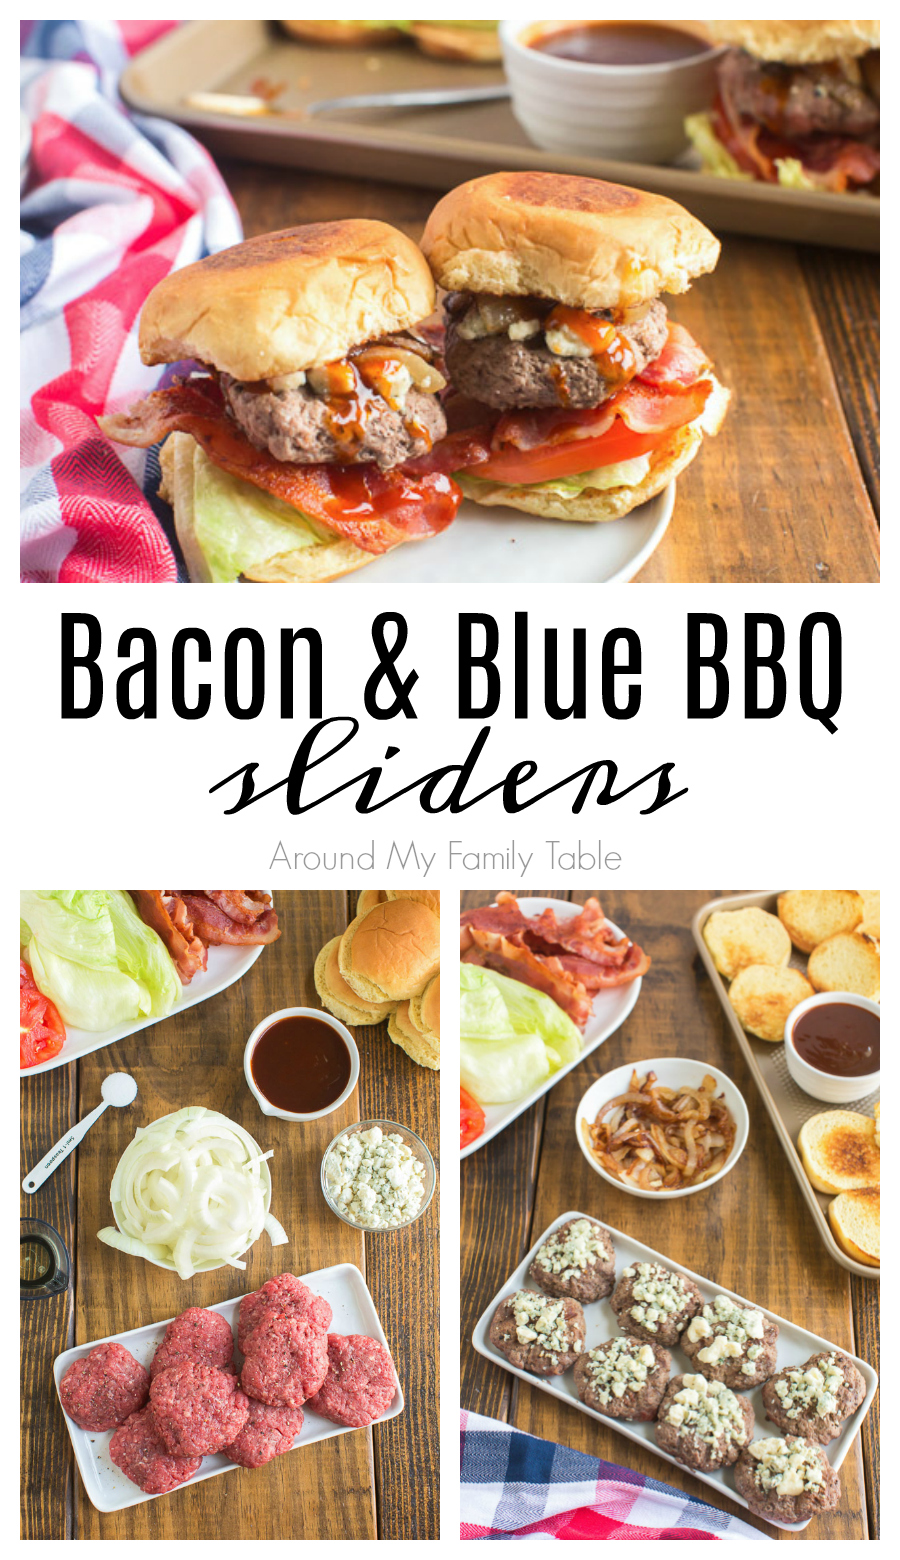 Bacon Blue Sliders are mini burgers with BBQ sauce, bacon, caramelized onions and blue cheese on top. Make this slider recipe for your next cookout! via @slingmama